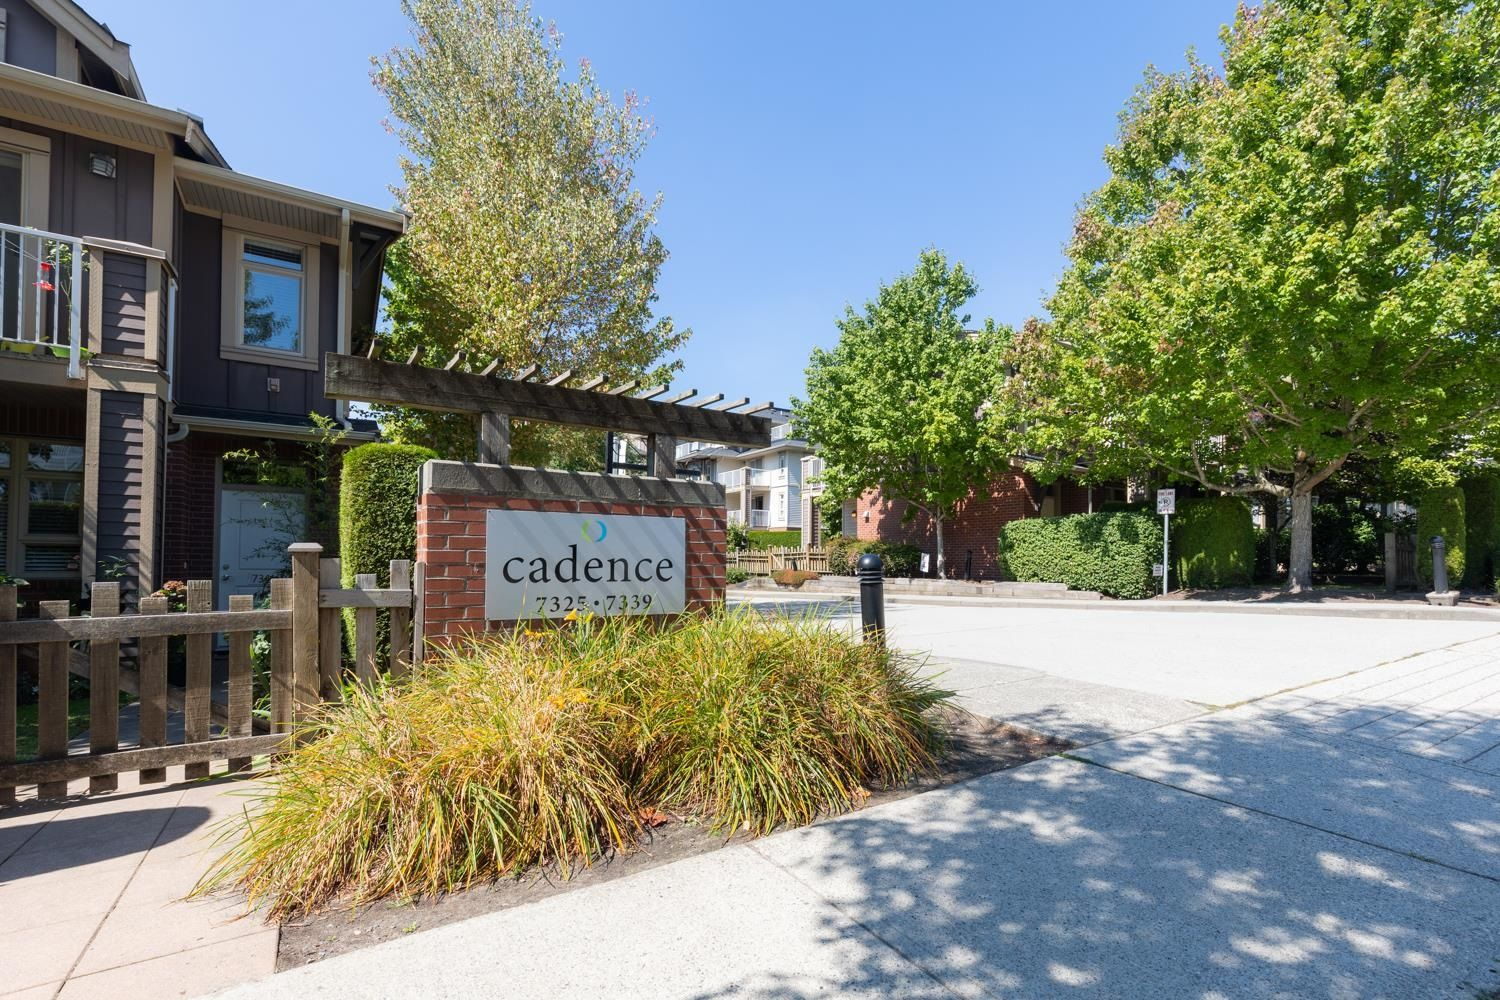 """Main Photo: 304 7339 MACPHERSON Avenue in Burnaby: Metrotown Condo for sale in """"CADENCE"""" (Burnaby South)  : MLS®# R2625090"""